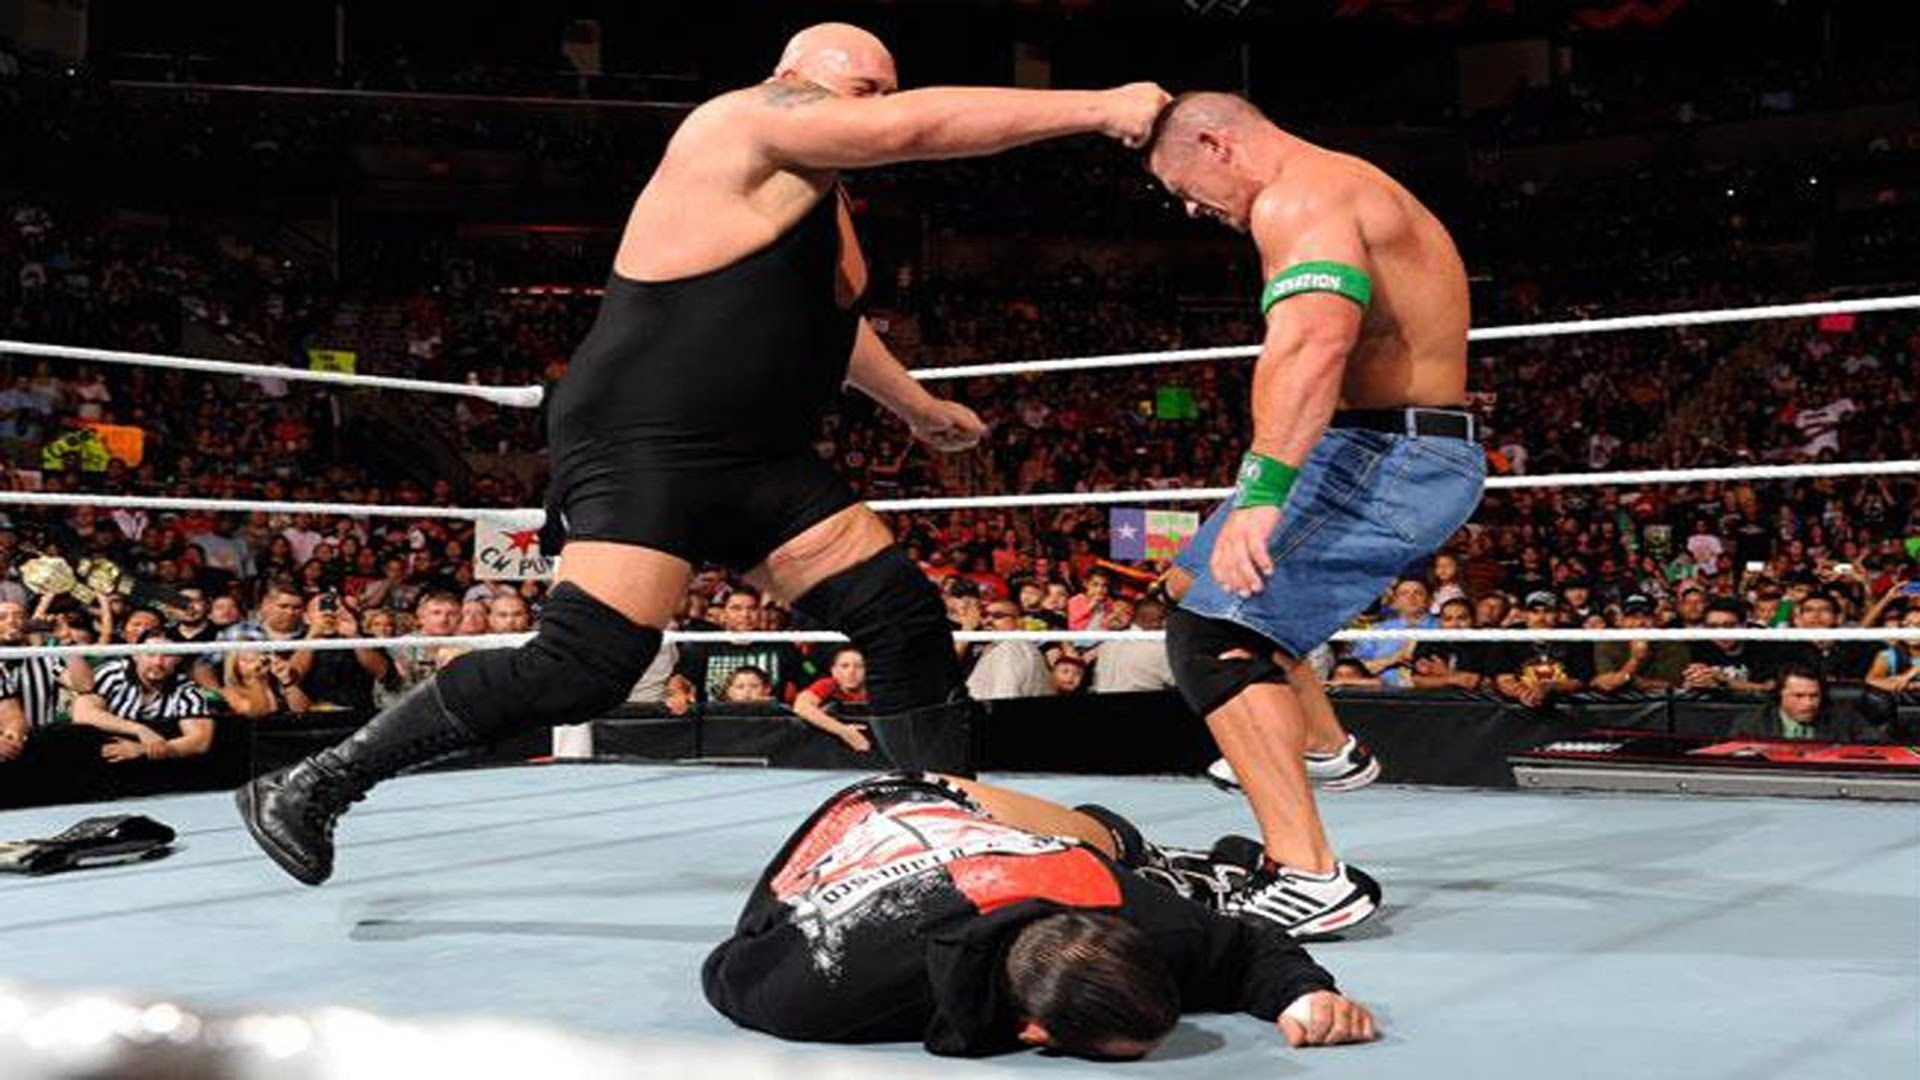 Big Show and John Cena Fight in WWE HD Wallpapers of